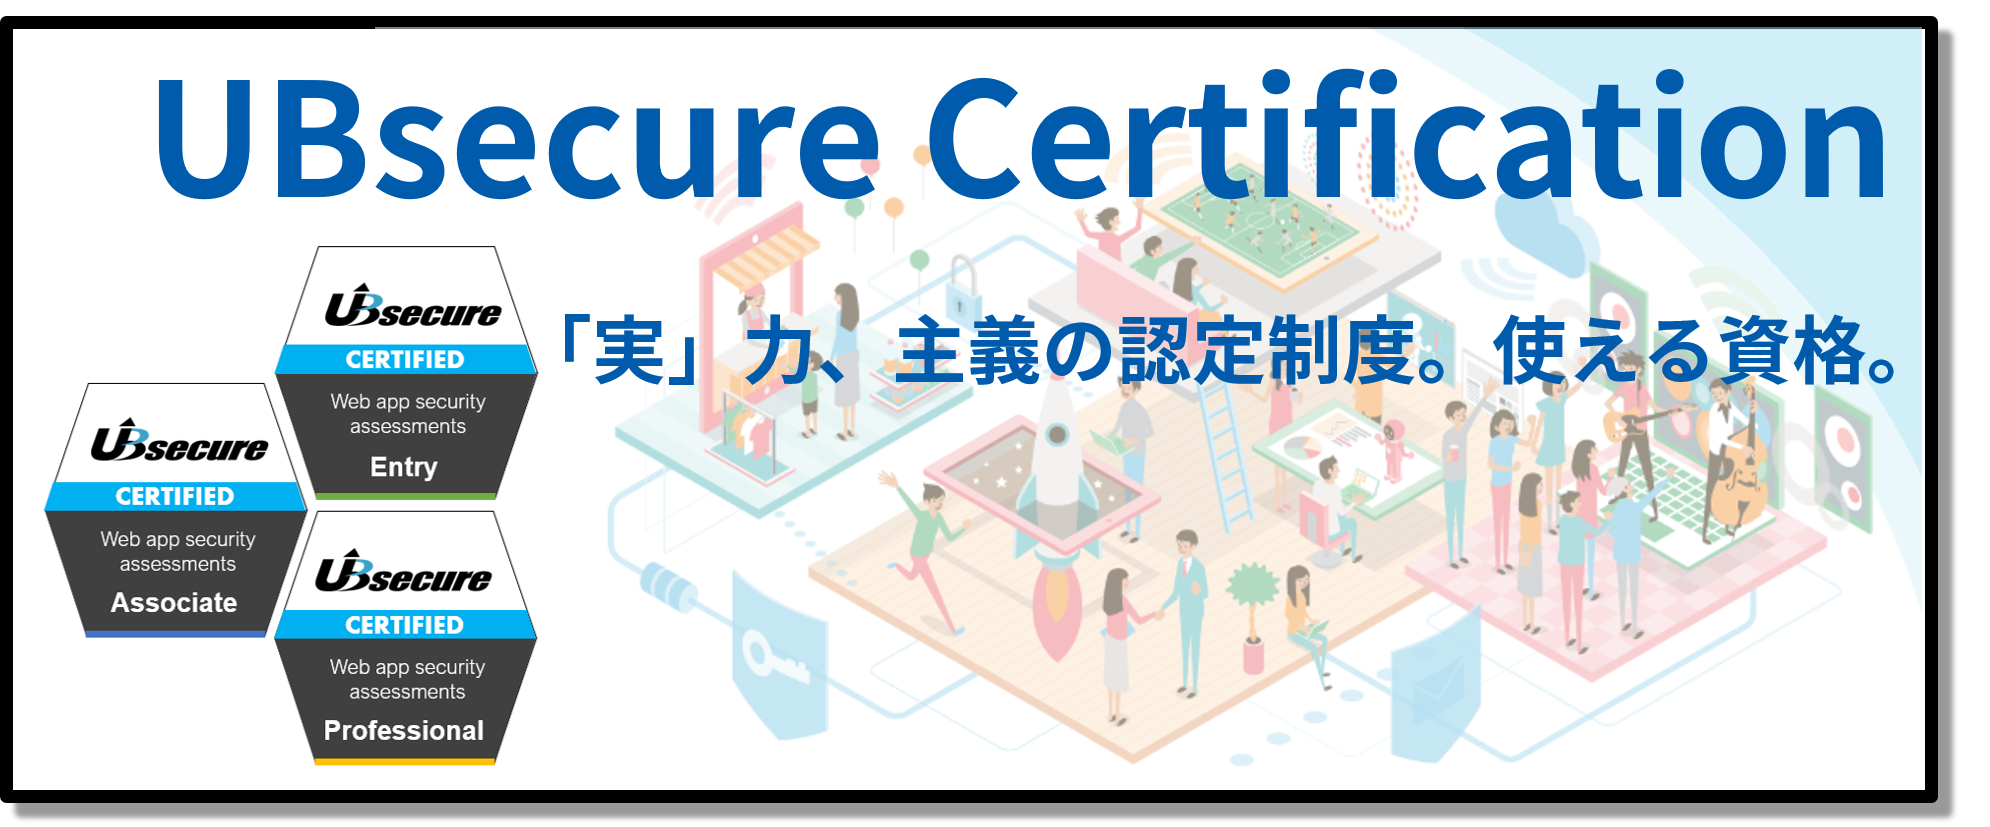 Secure SketCH_UBSecure Certification_C